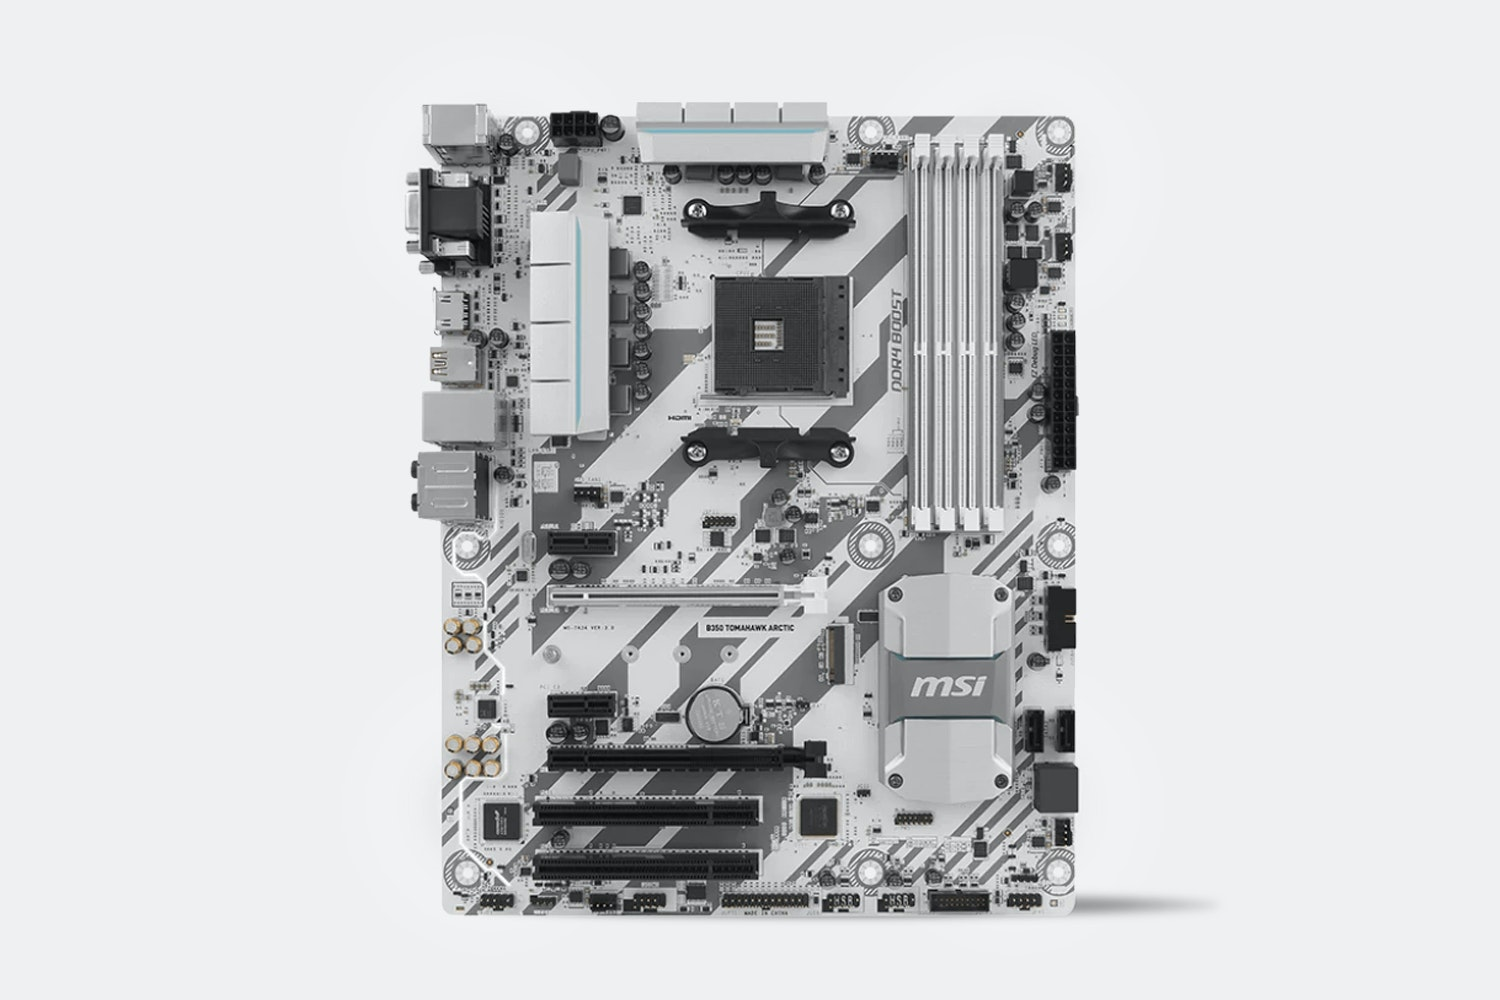 page 1_20170518115042?auto=format&fm=jpg&fit=crop&w=473&dpr=1 msi b350 tomahawk arctic motherboard amd ryzen price & reviews MSI B350 Tomahawk in the Dark at fashall.co